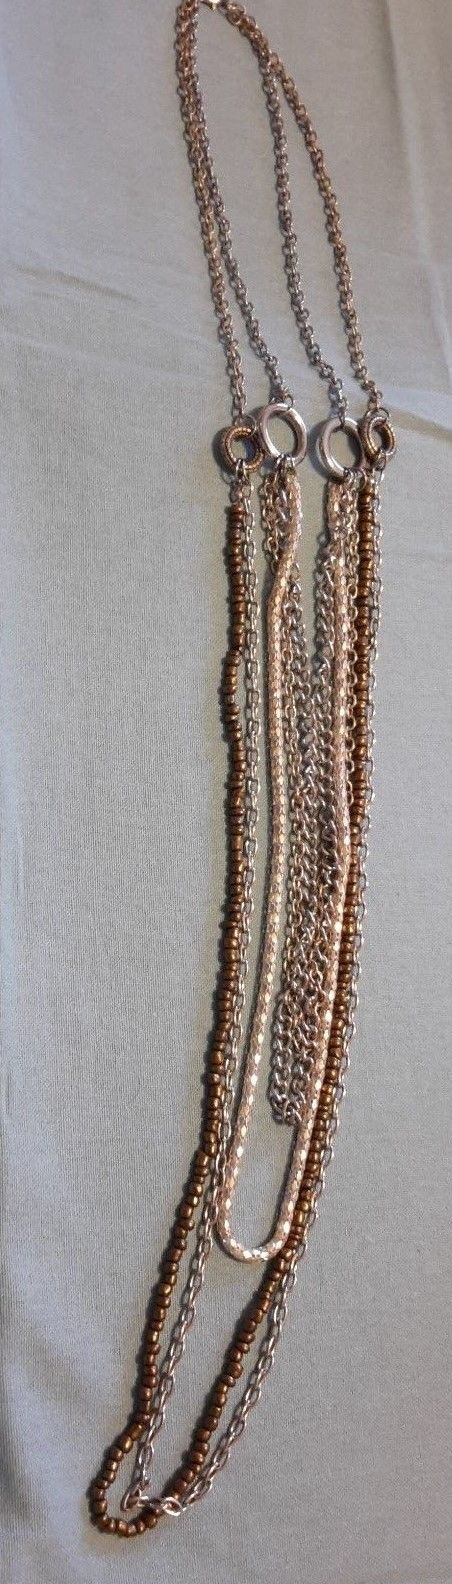 Fall! Vintage Silvertone Waist length multi strand chain necklace